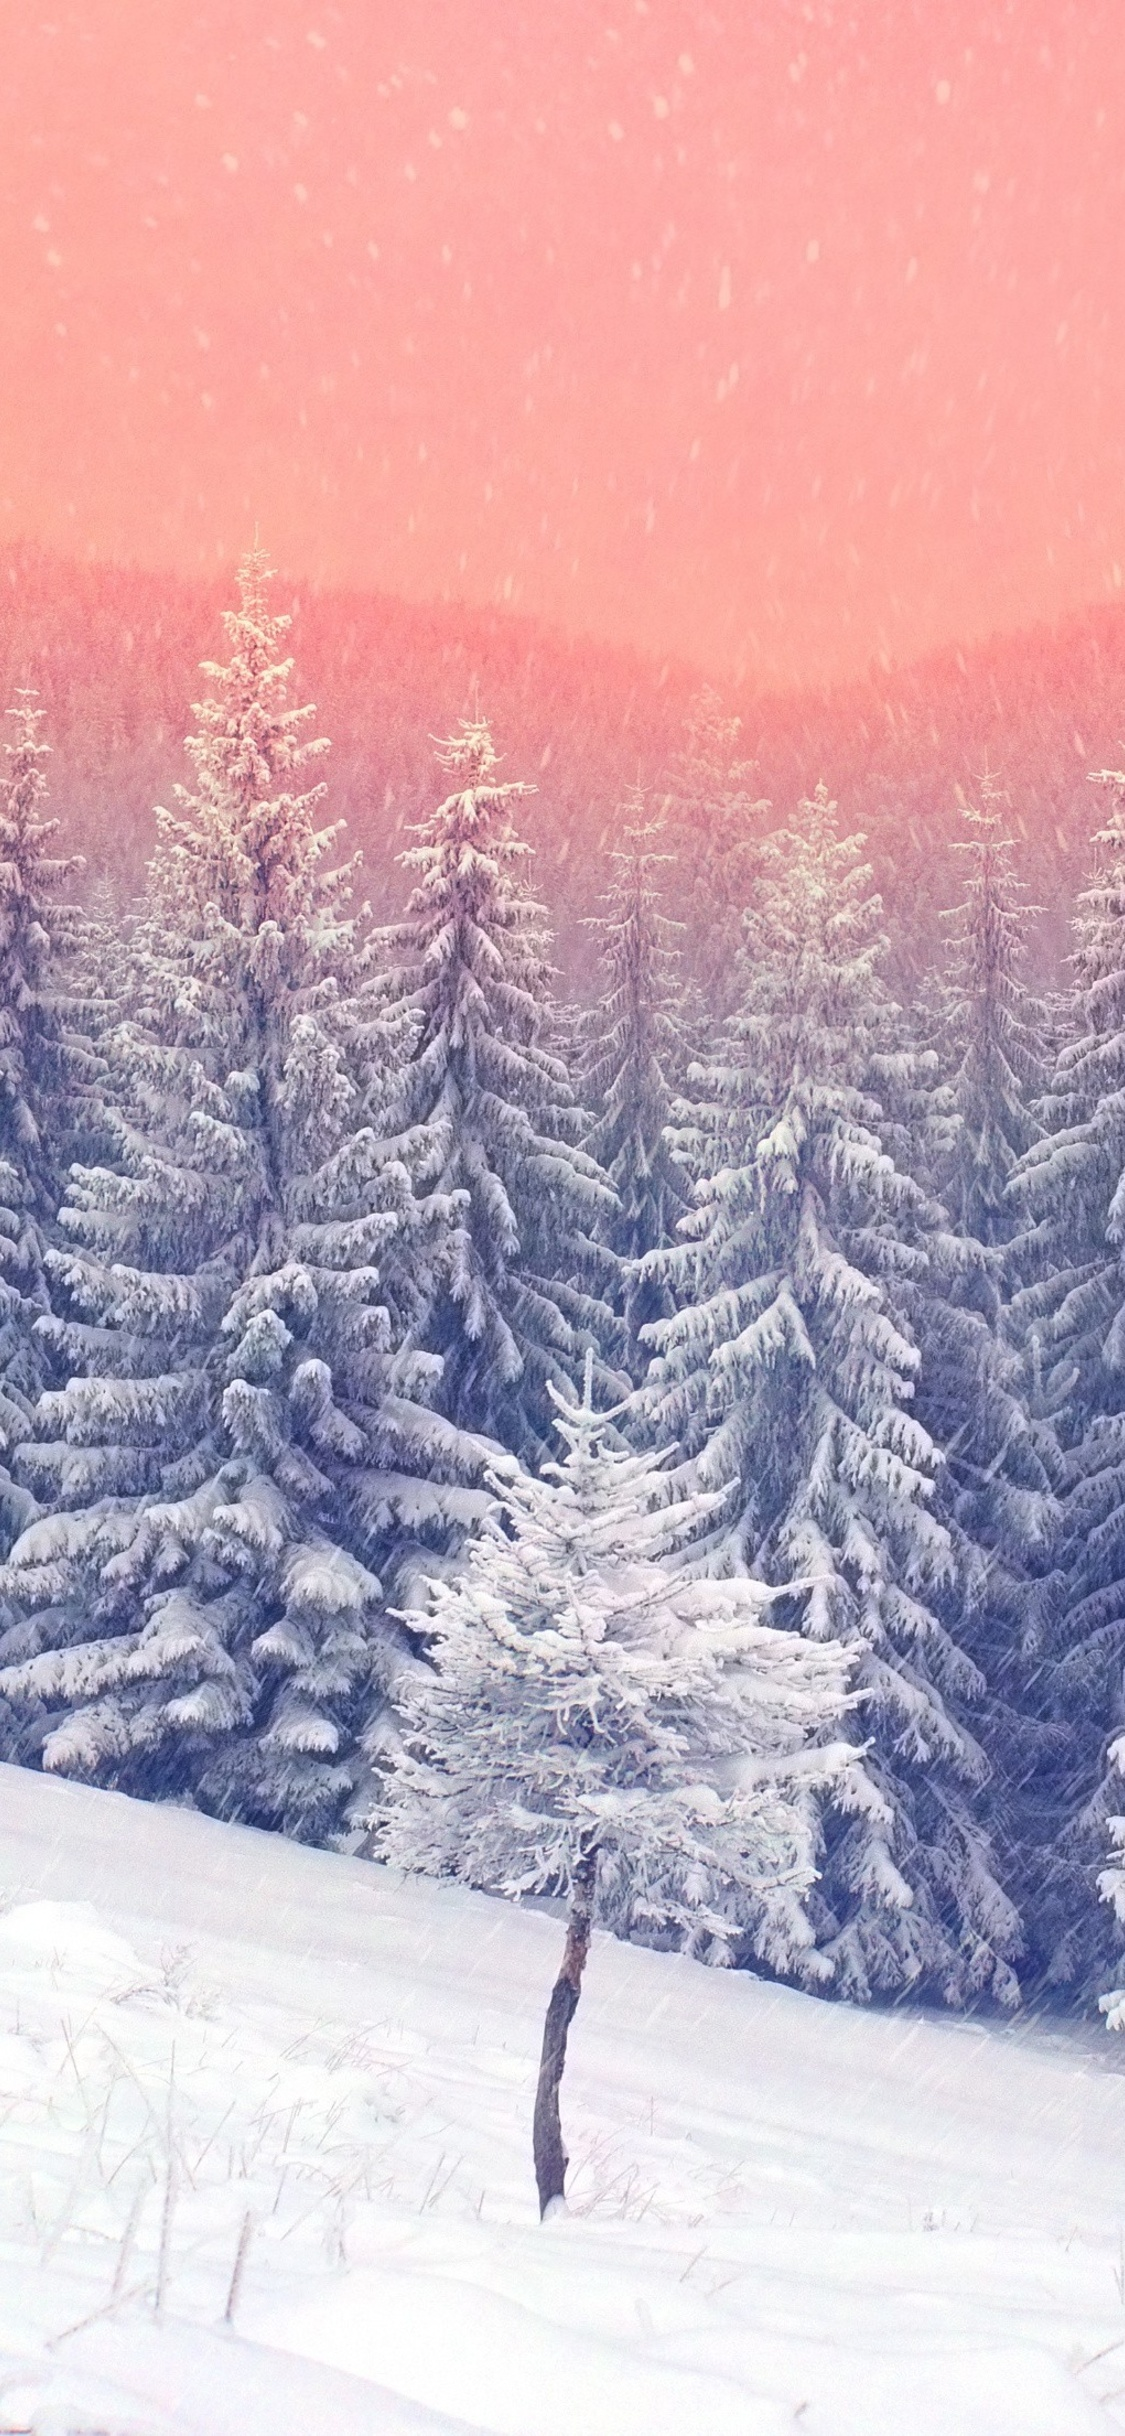 landscape-snow-trees-5k-vs.jpg